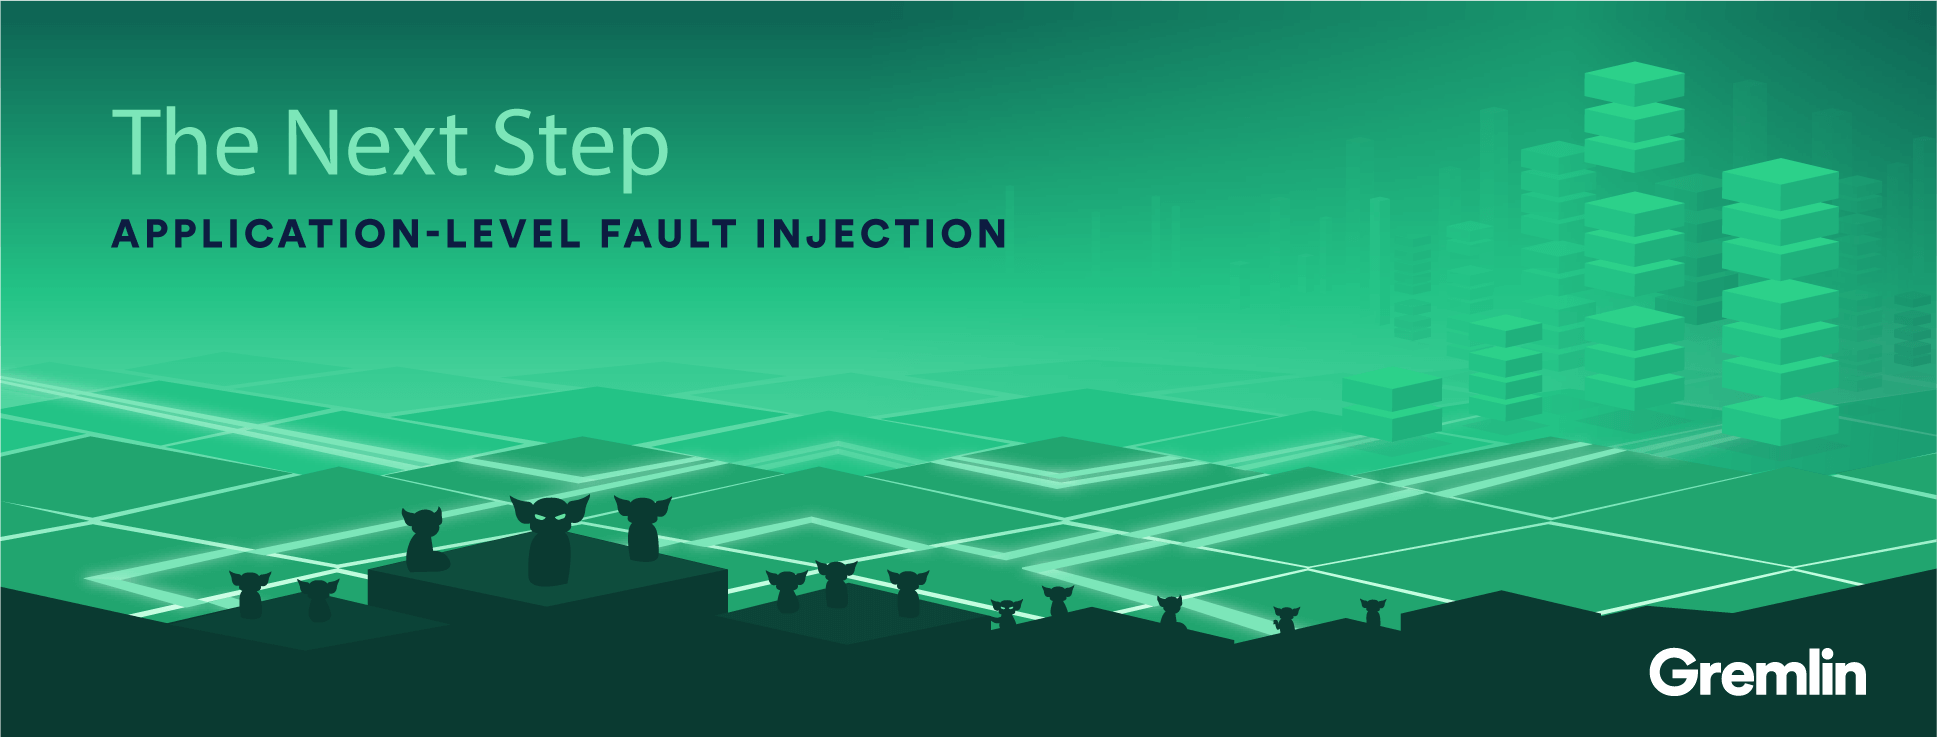 The Next Step: Application-Level Fault Injection